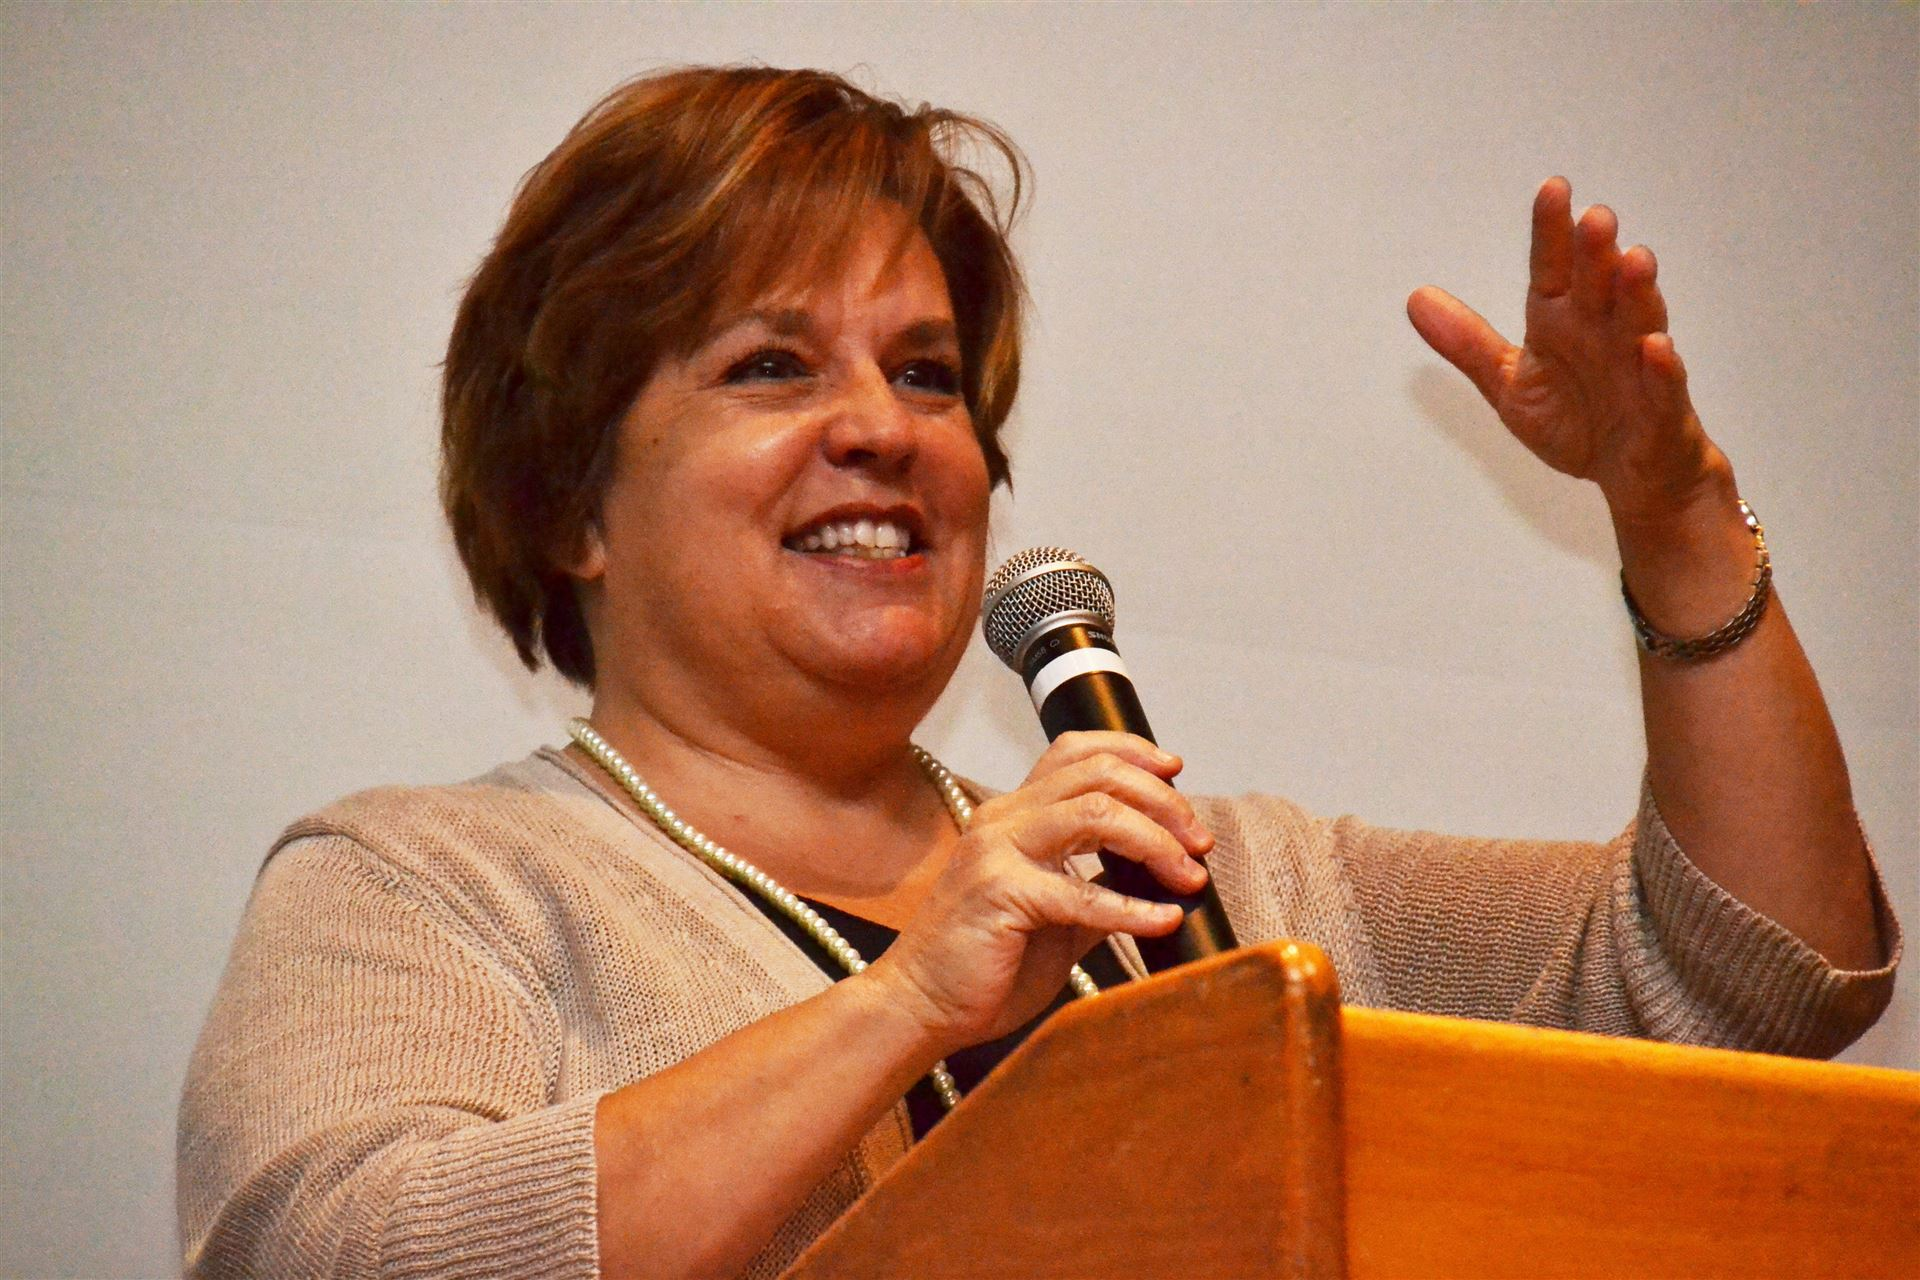 Board President Praises School Staff for Choosing to Serve